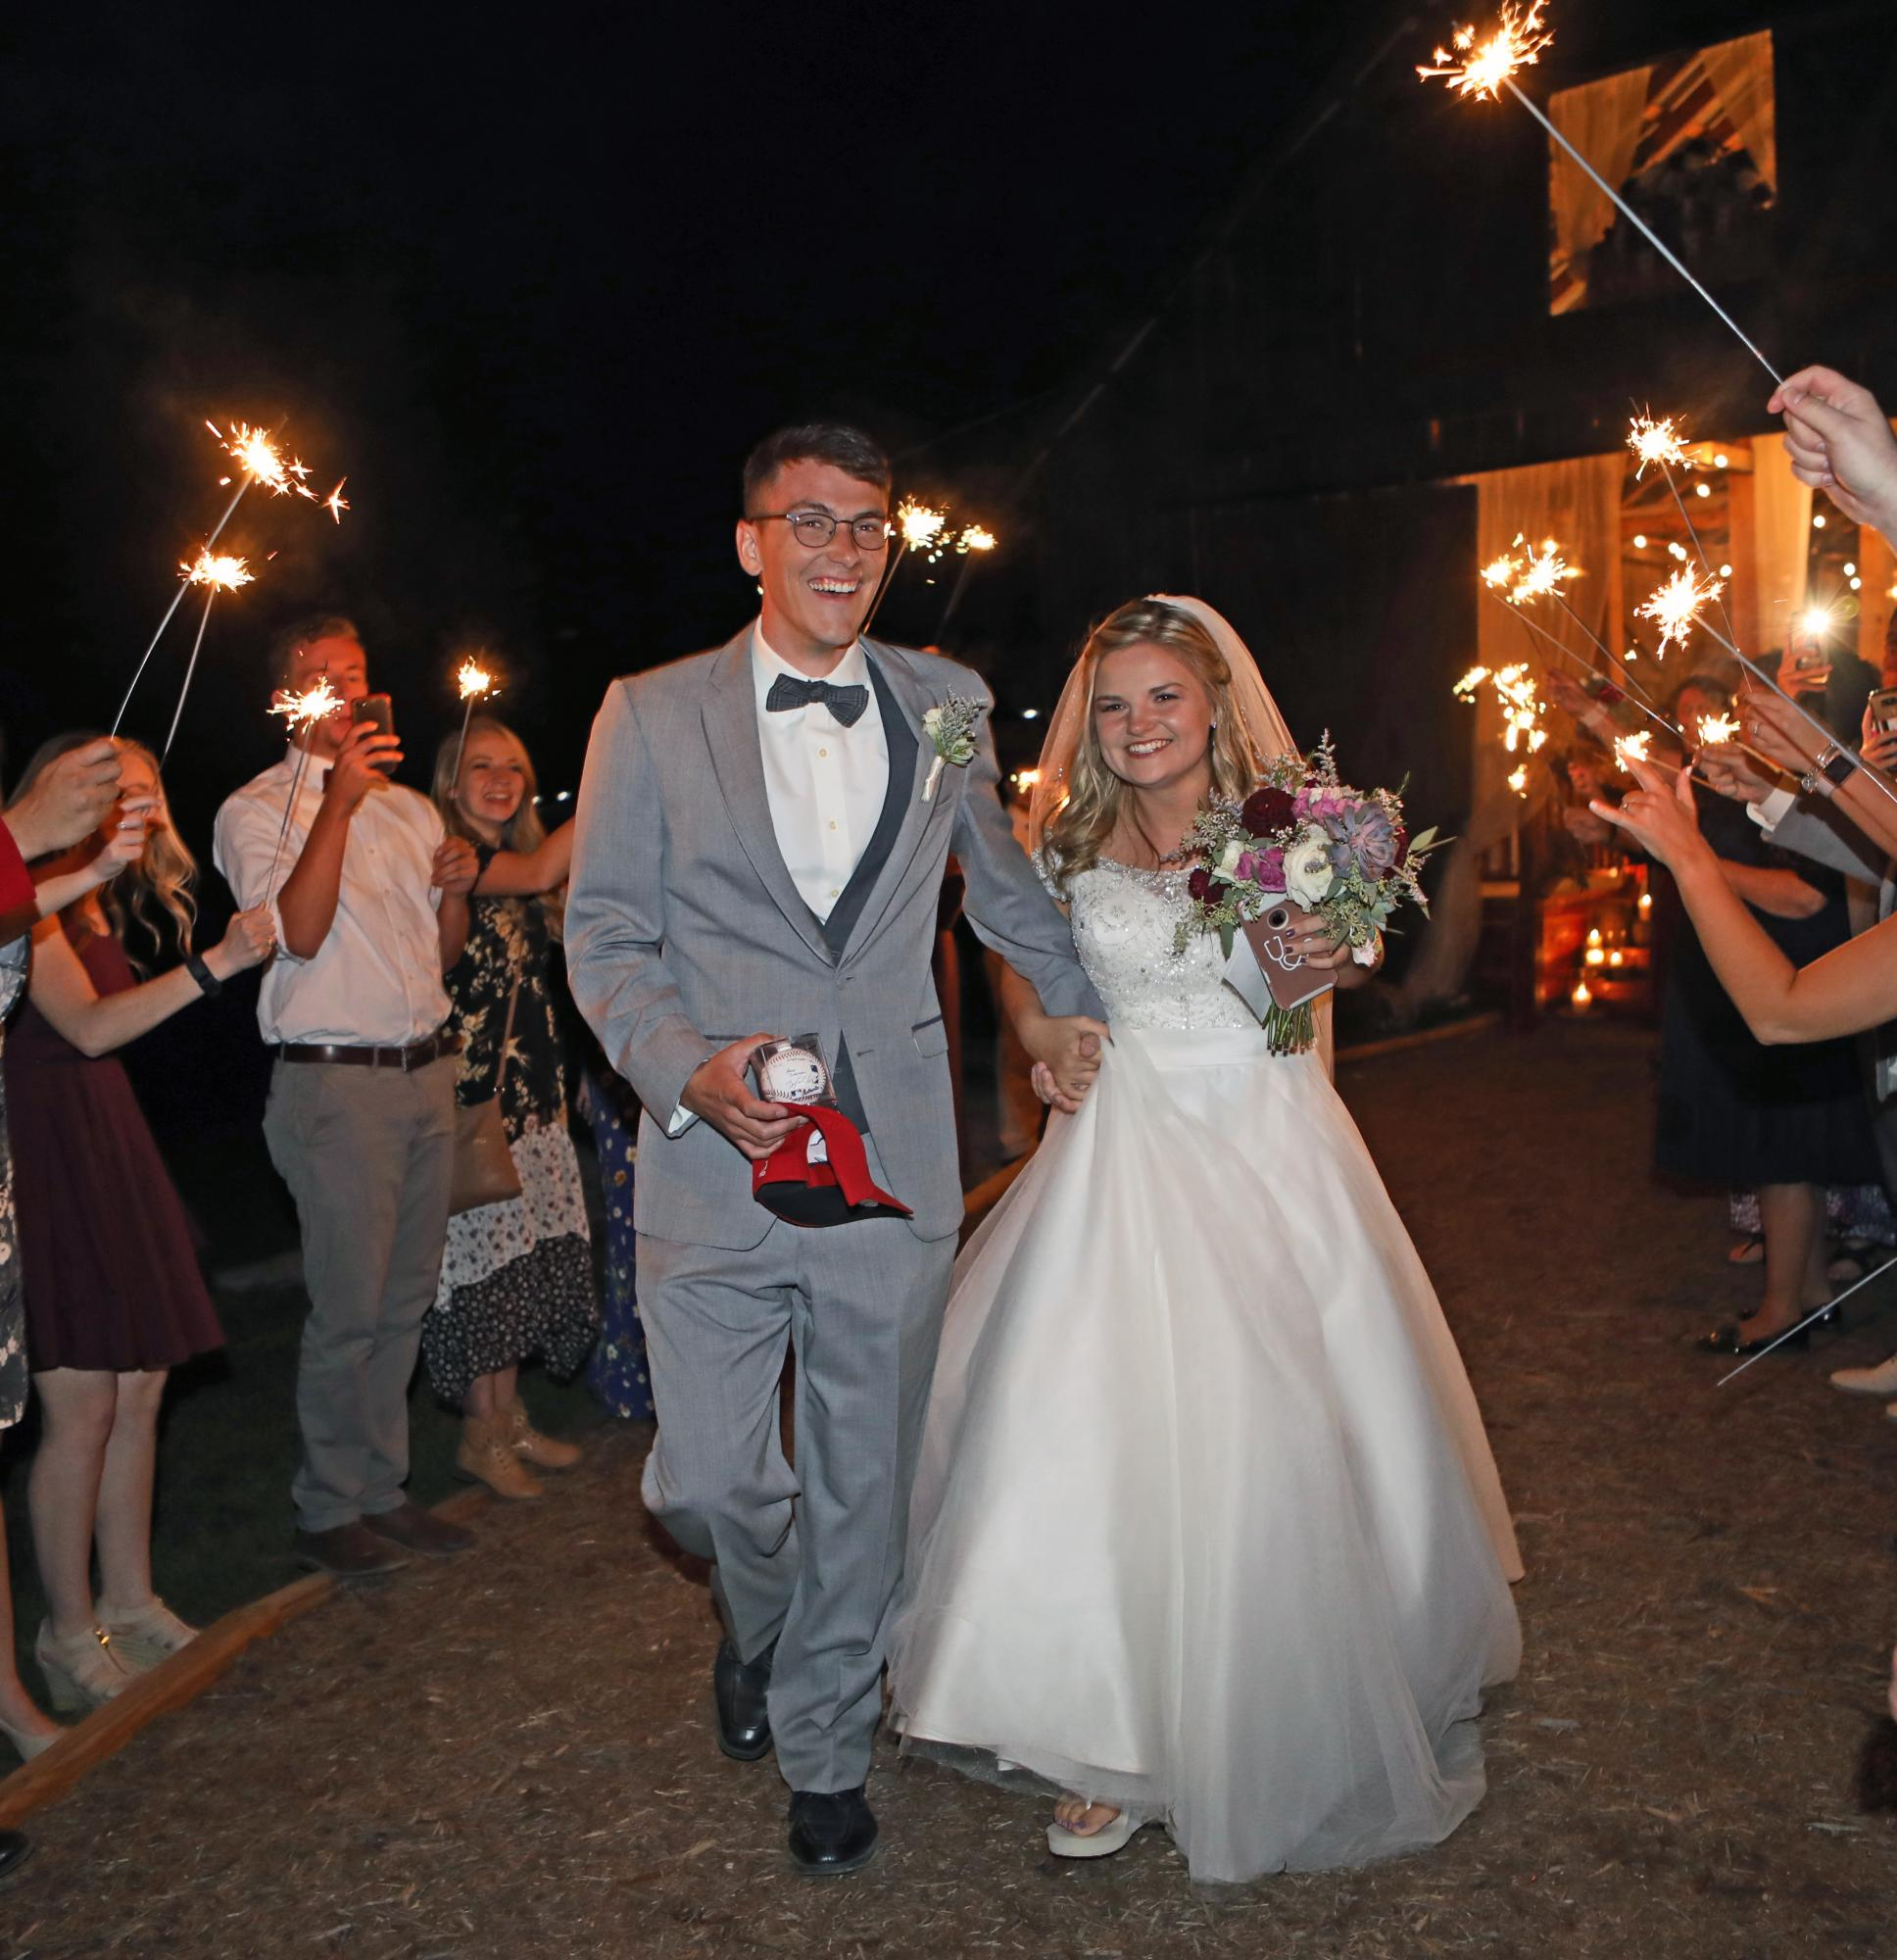 17__Groom_Bride_exiting_Sparklers.jpg